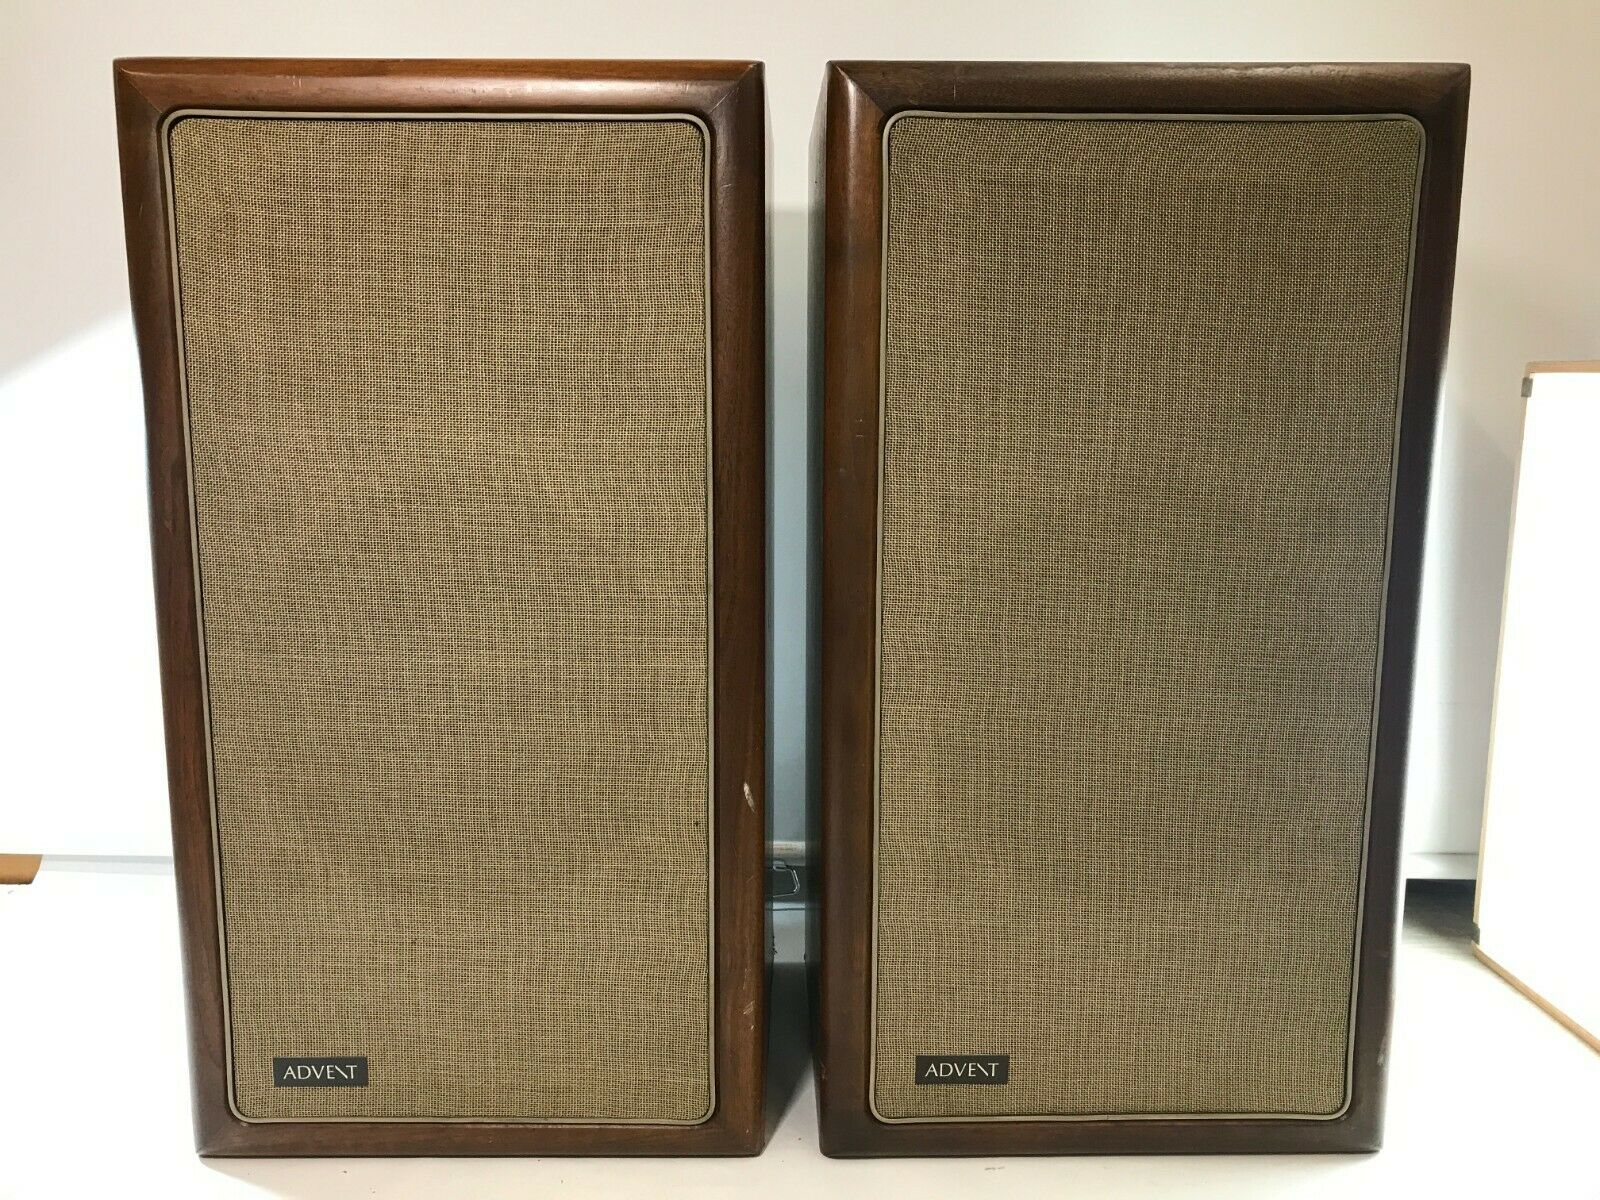 The Advent Loudspeaker Pair Vintage Walnut Cabinet - For Parts LOCAL PICKUP ONLY